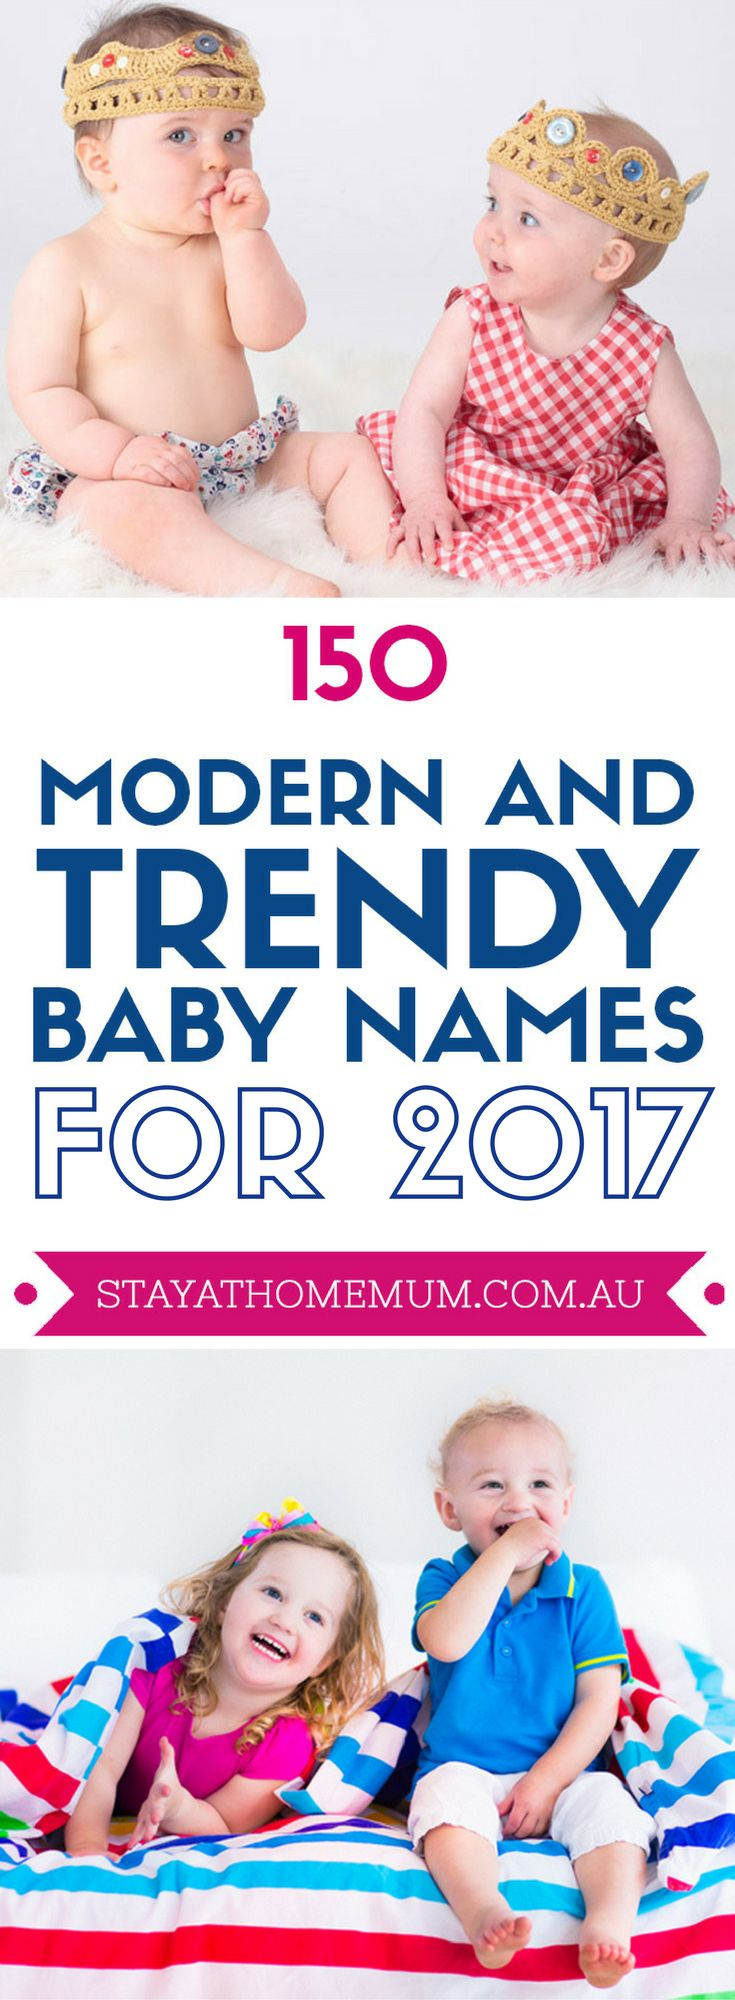 Finding A Trendy Name For Your New Bub Unisex Boys And Girls Names Vary Widely So We Have Narrowed Down The Most Modern Trending Baby To Date